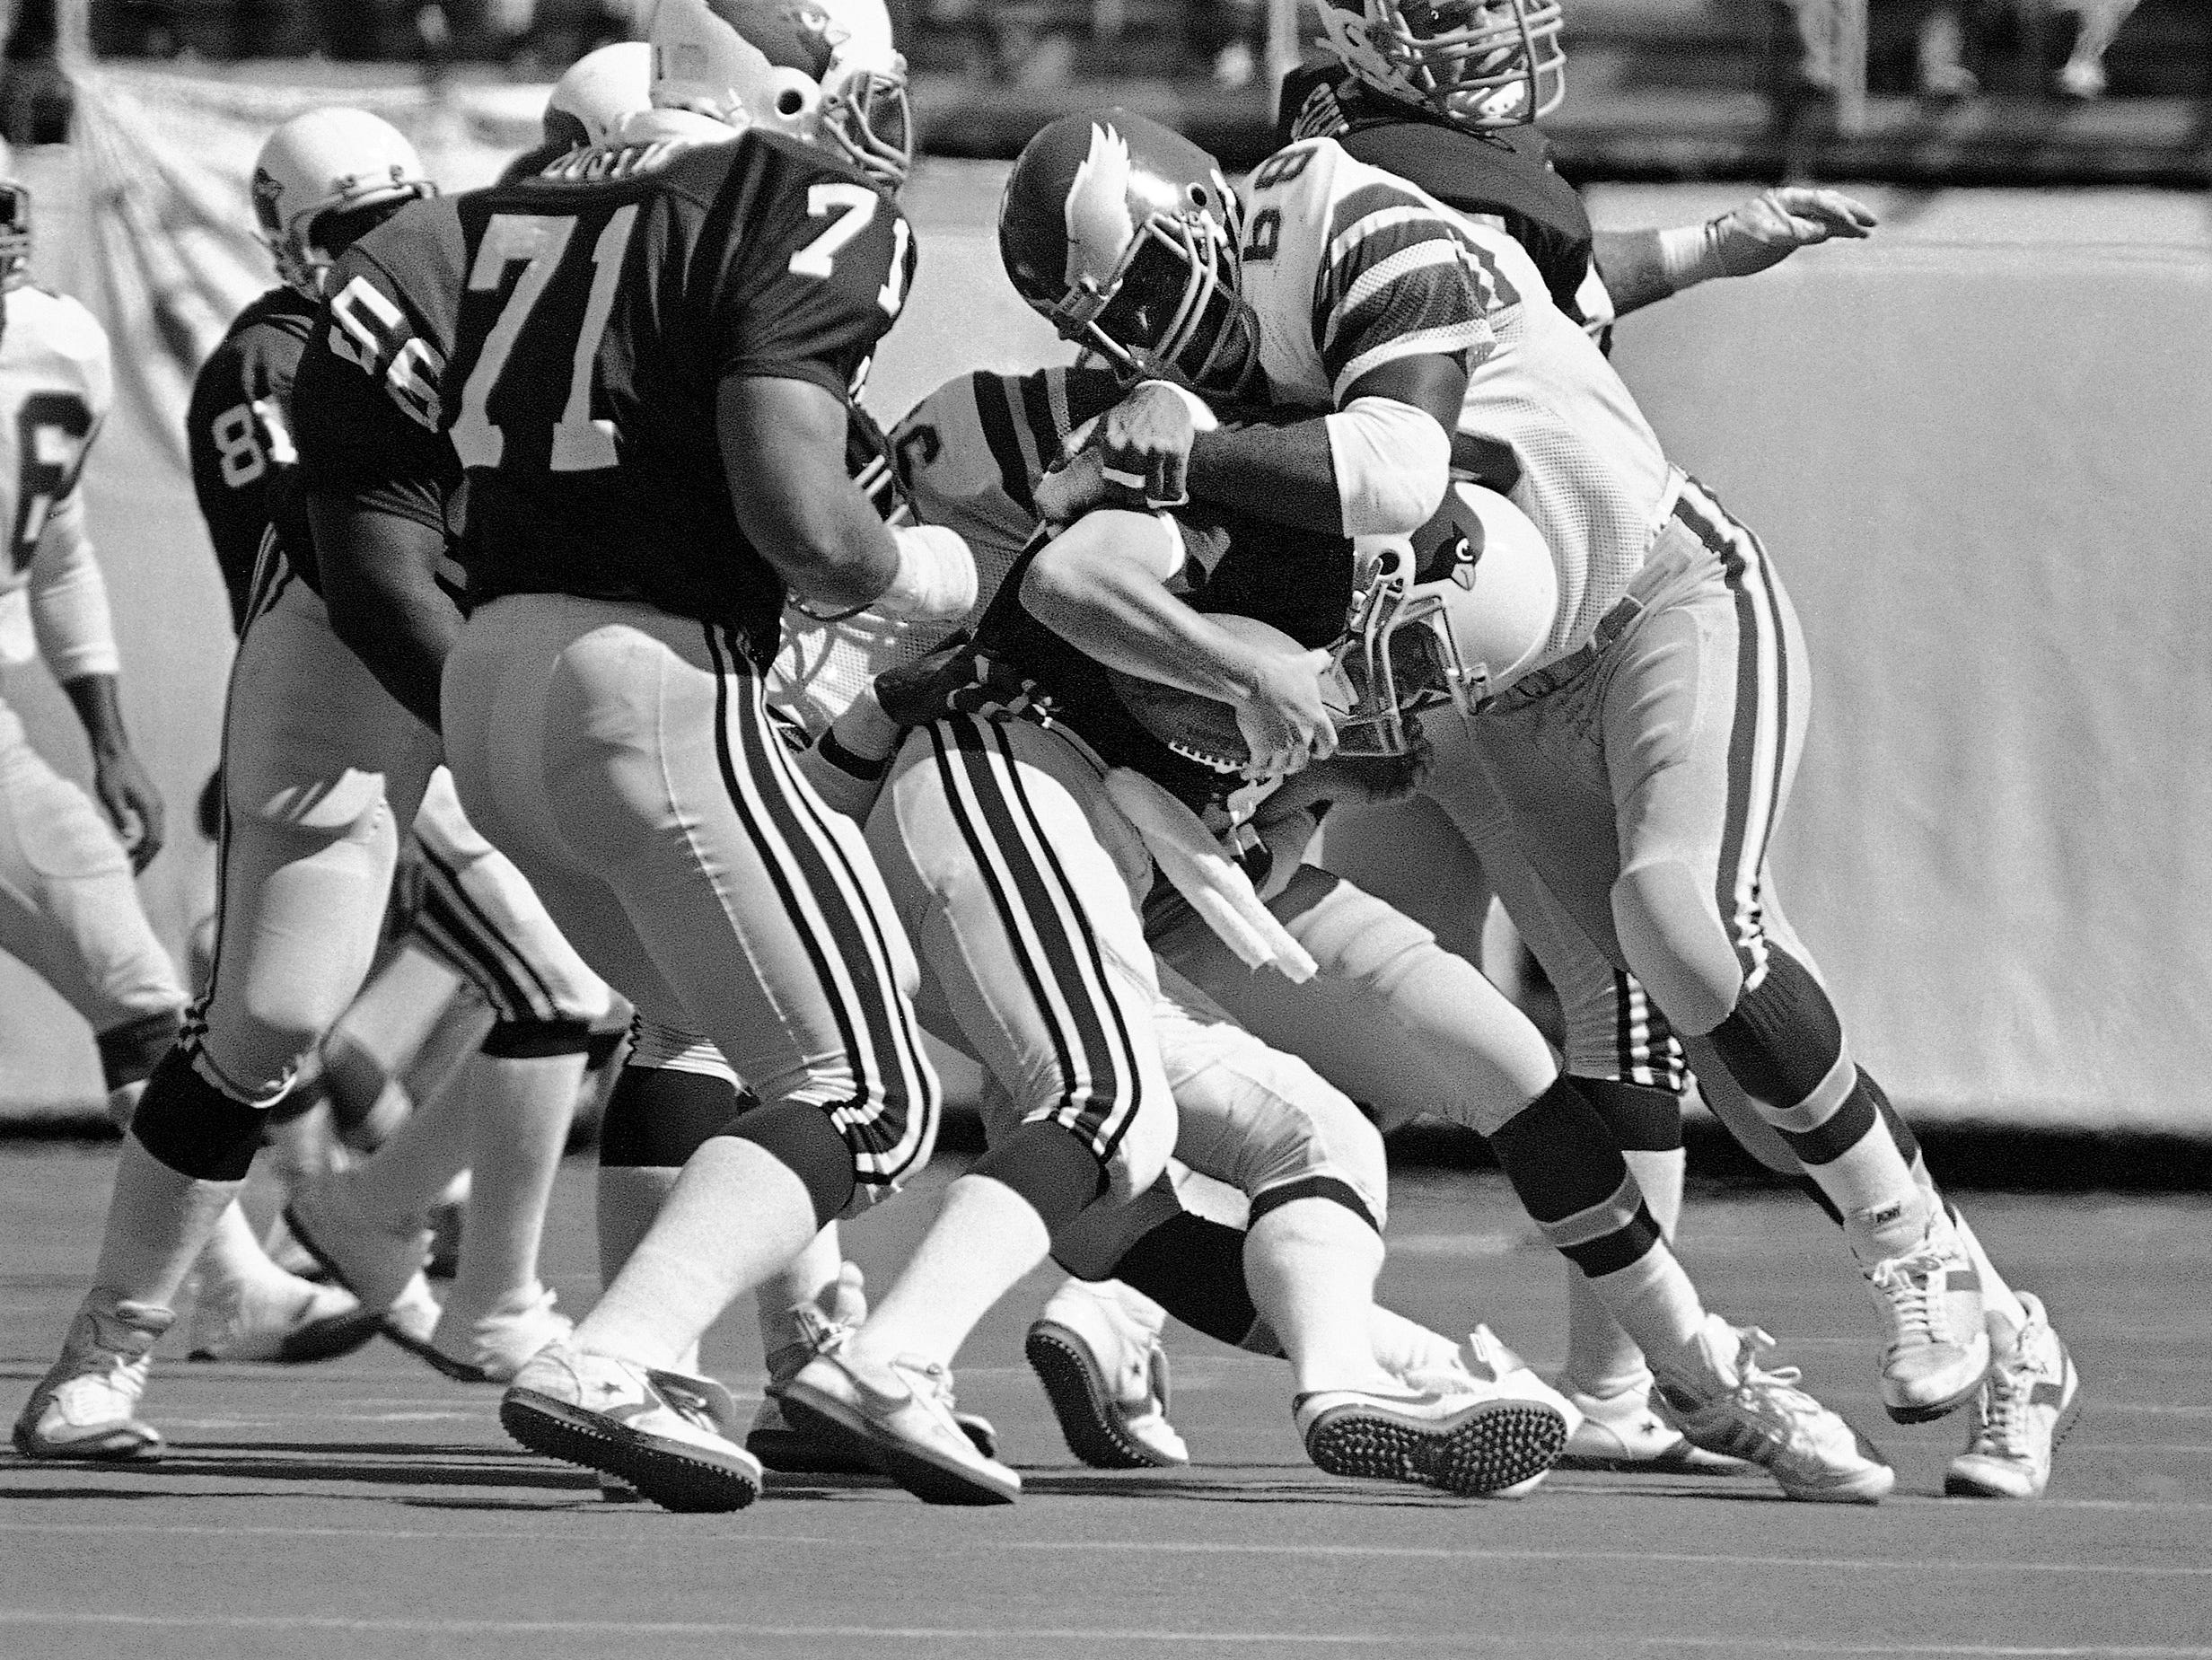 St. Louis Cardinals quarterback Jim Hart, center, is sacked for a five yard loss by Philadelphia Eagles defensive end Dennis Harrison late in the first quarter of play at Veterans Stadium in Philadelphia on Sept. 25, 1983. (AP Photo/Rusty Kennedy)